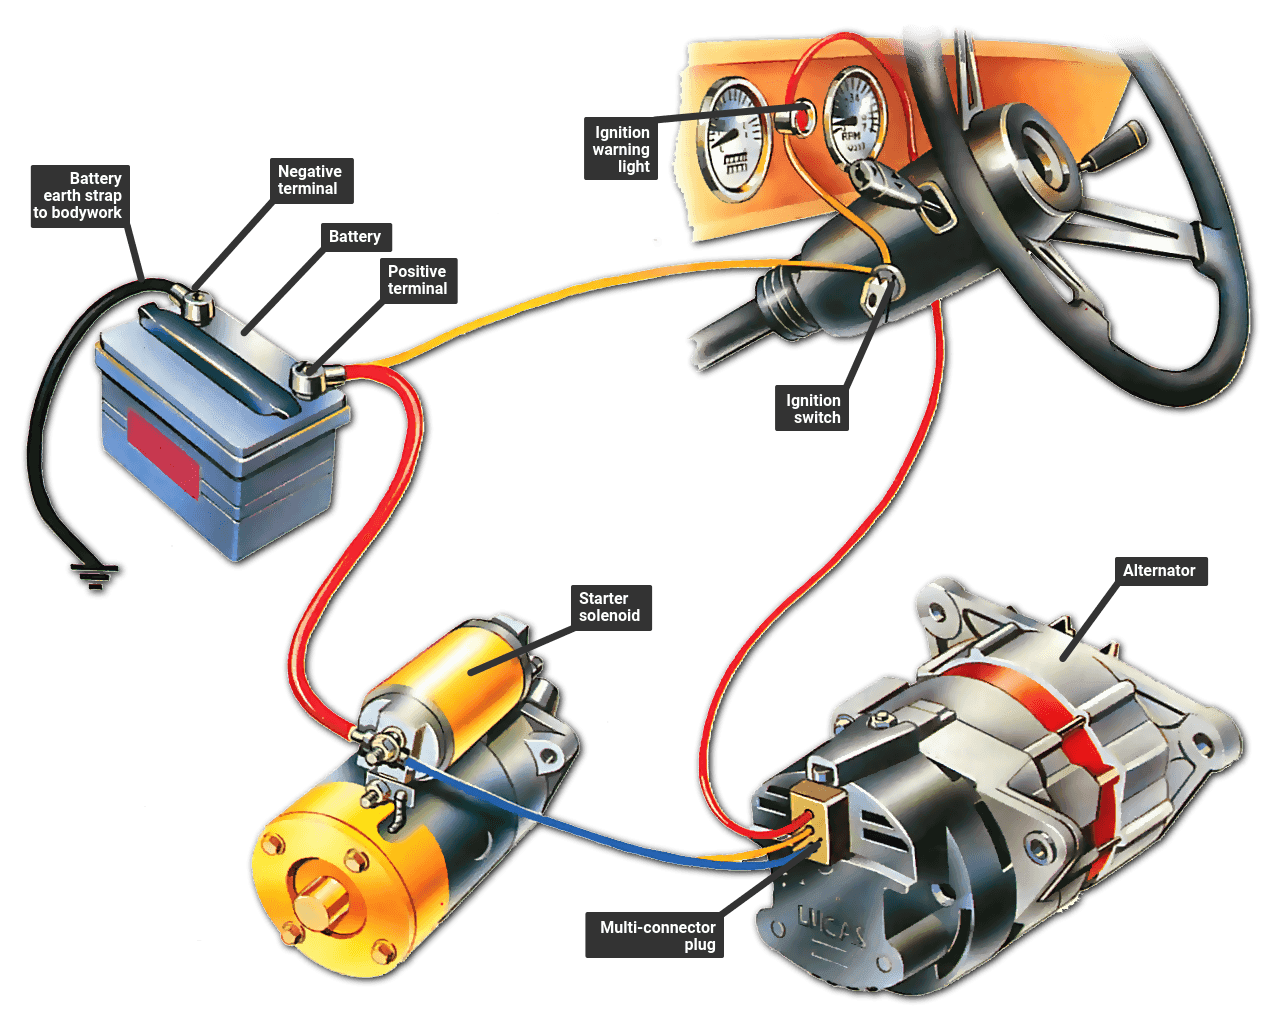 hight resolution of battery wiring diagram 97 suzuki intruder 1400